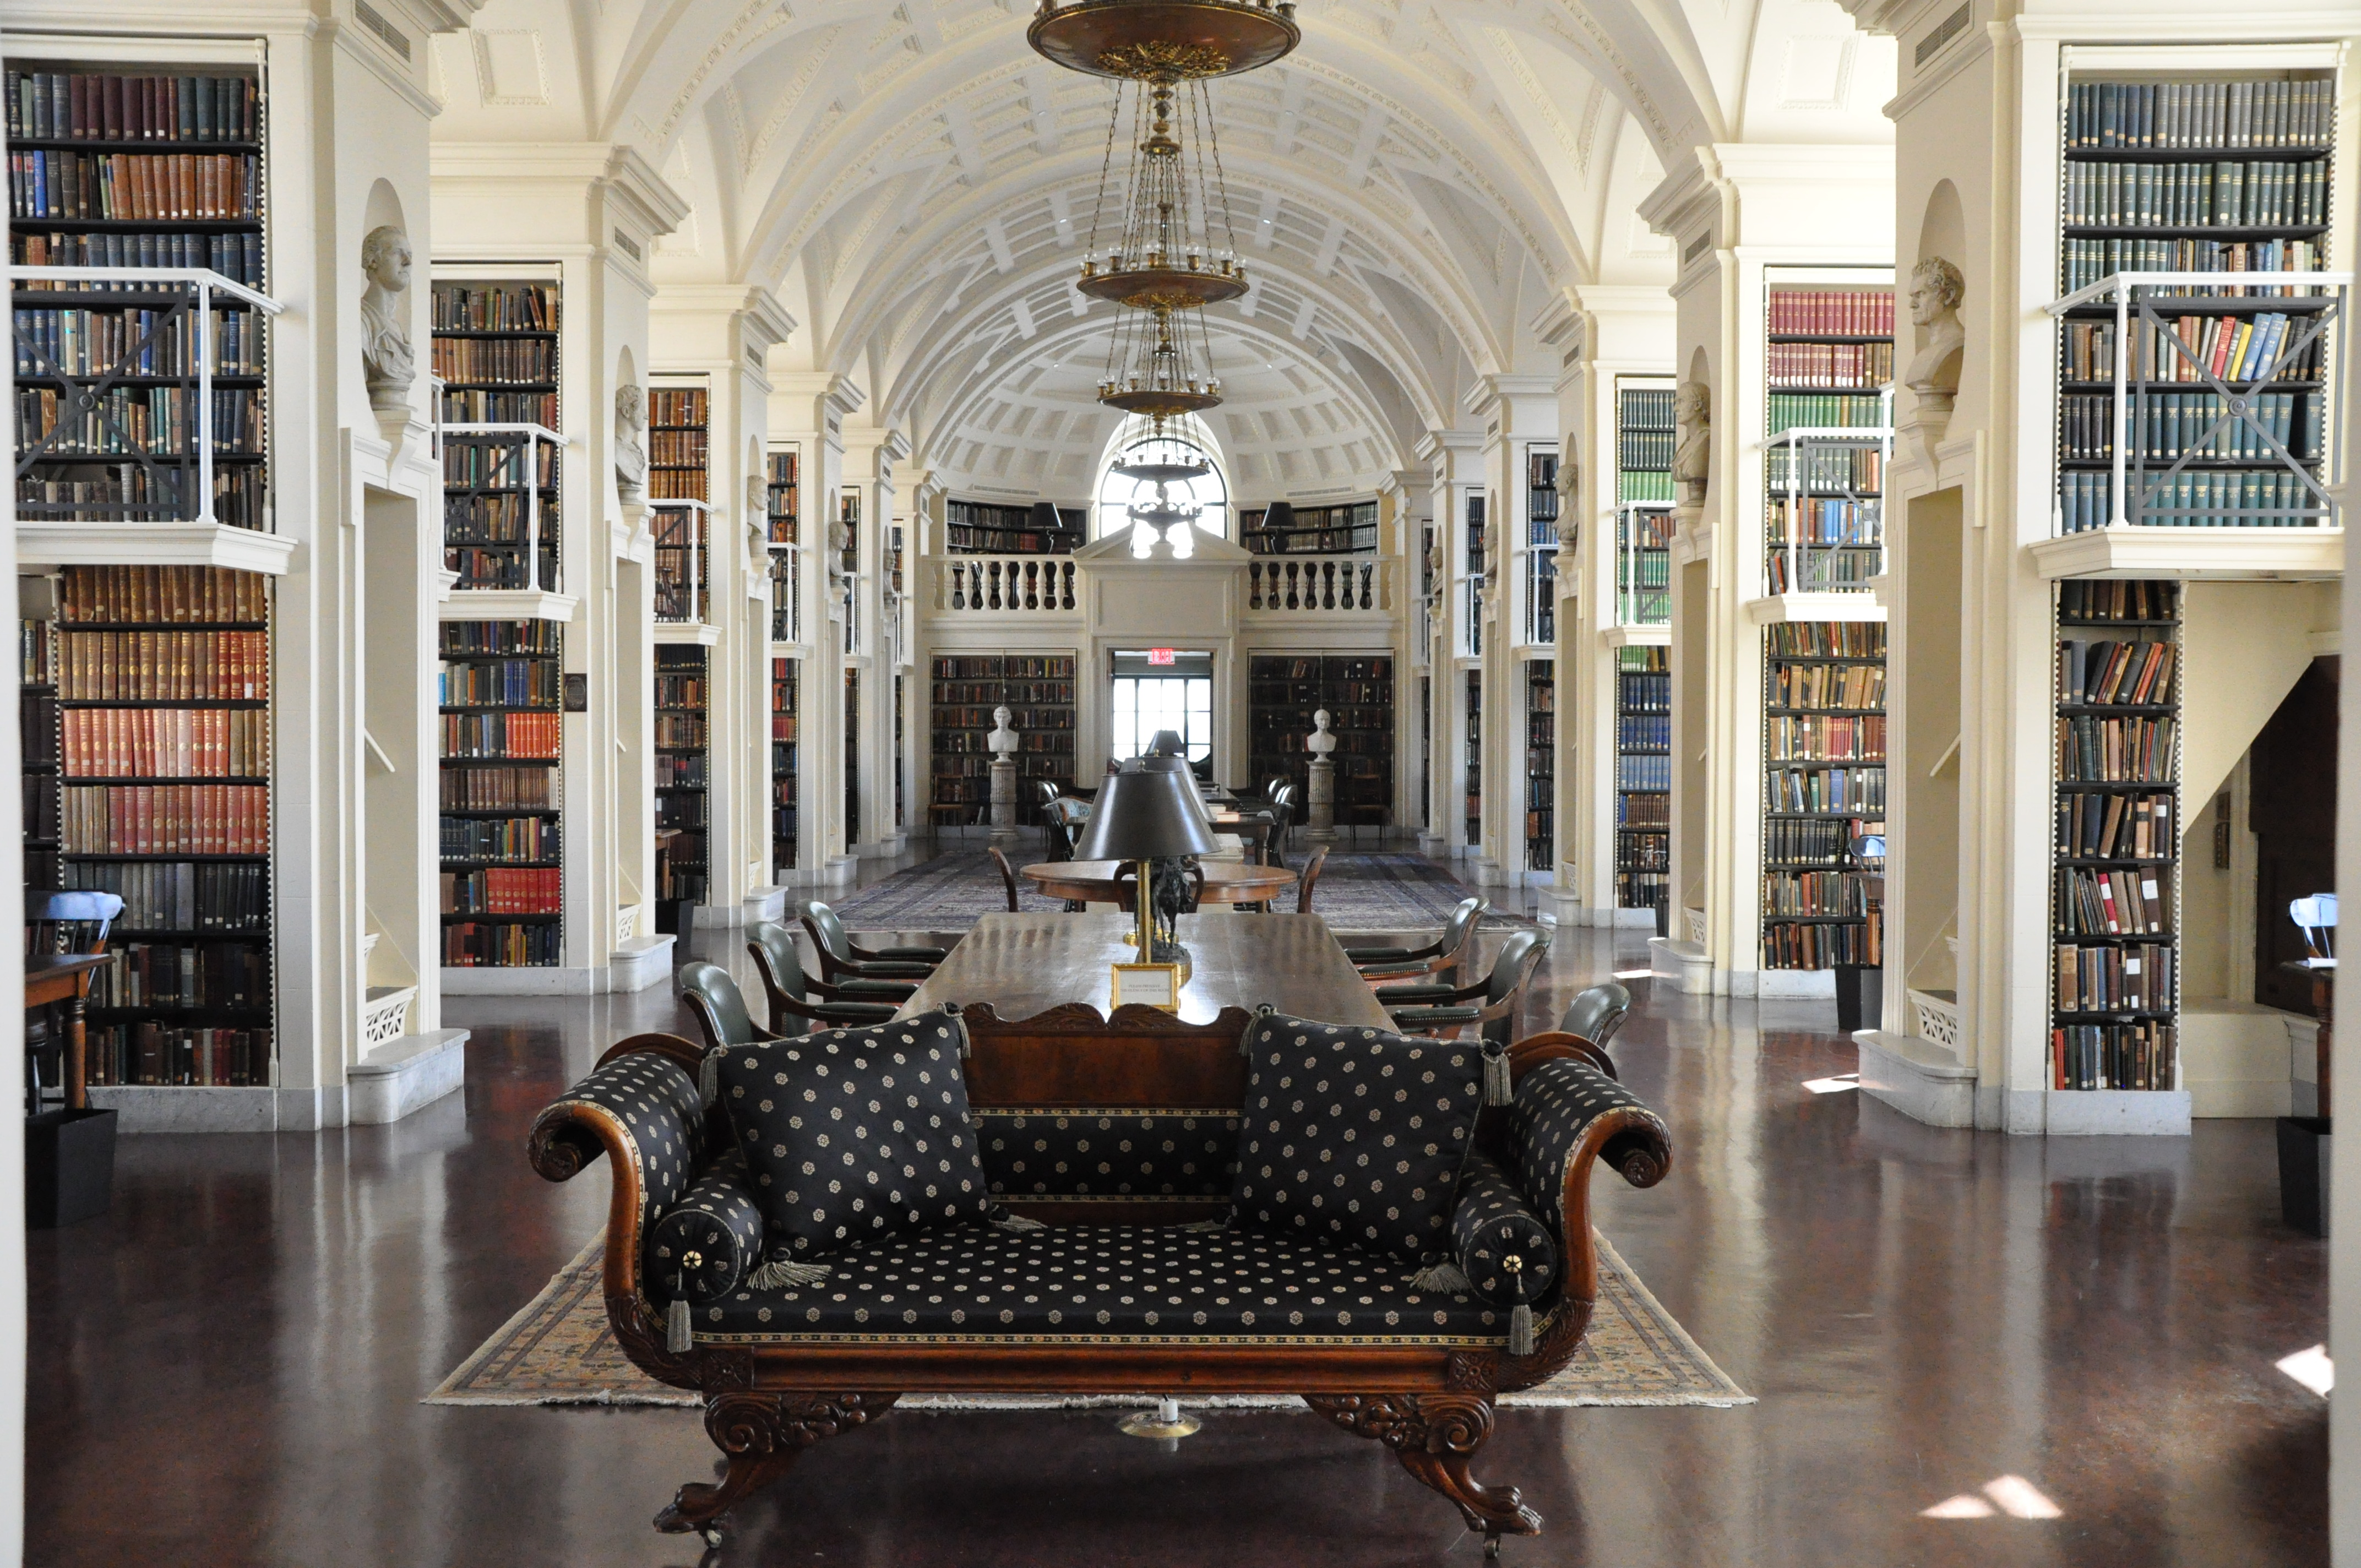 The Athenæum is a book-lover's paradise with five stories of reading spaces surrounded by art and overlooking the